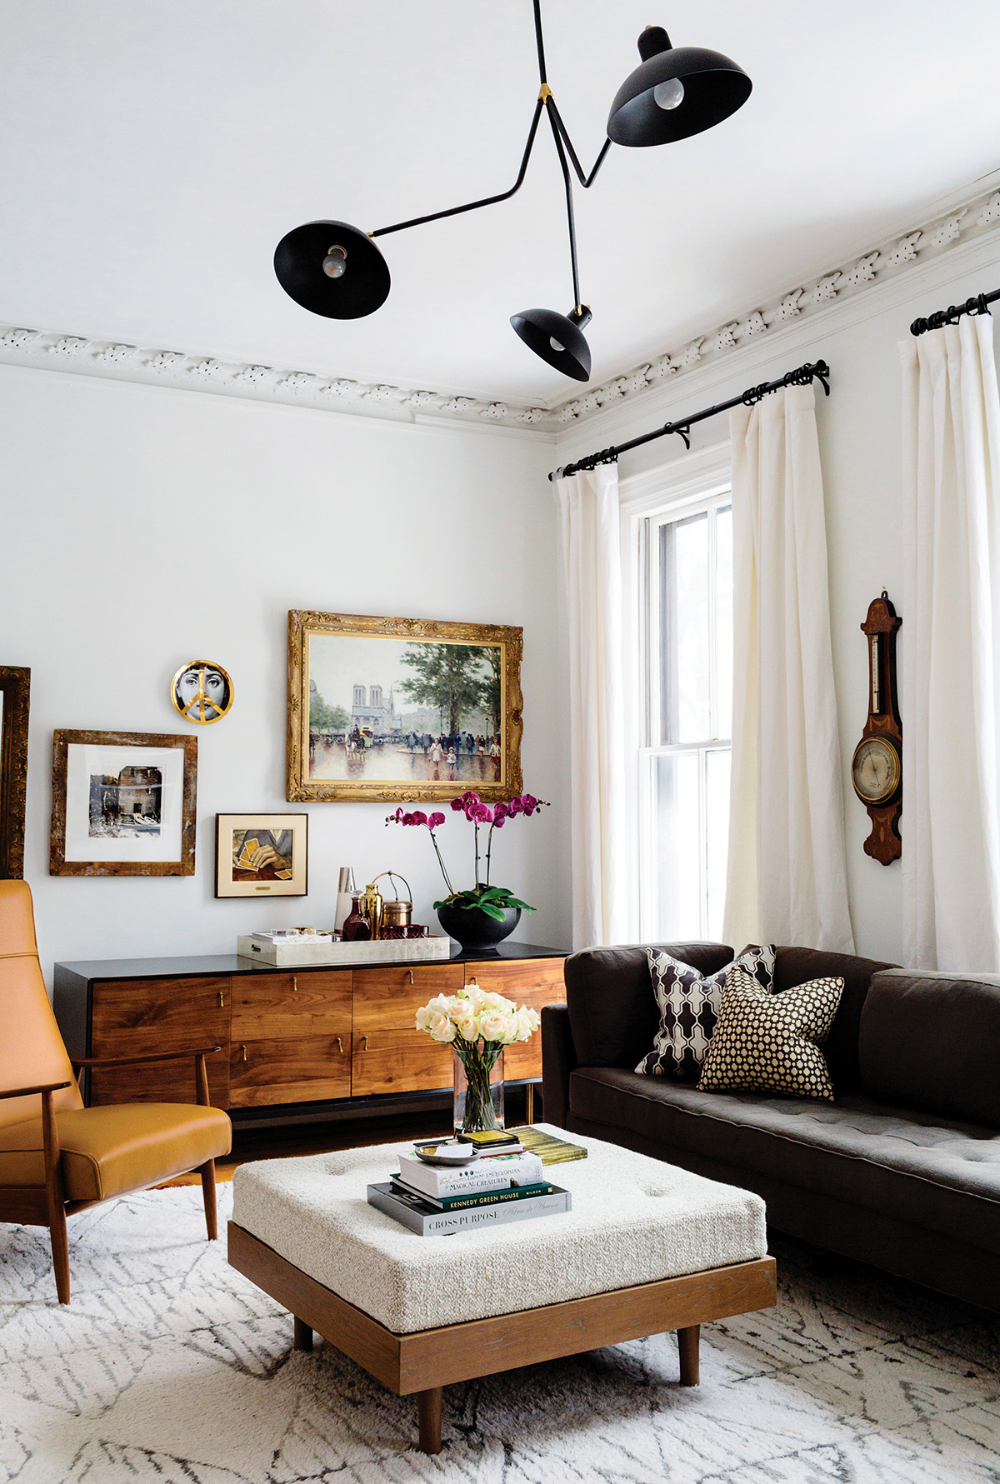 Vintage Modern Style Living Room How To Mix Old With New Eclectic Goods Eclectic Living Room Modern Style Living Room Apartment Living Room